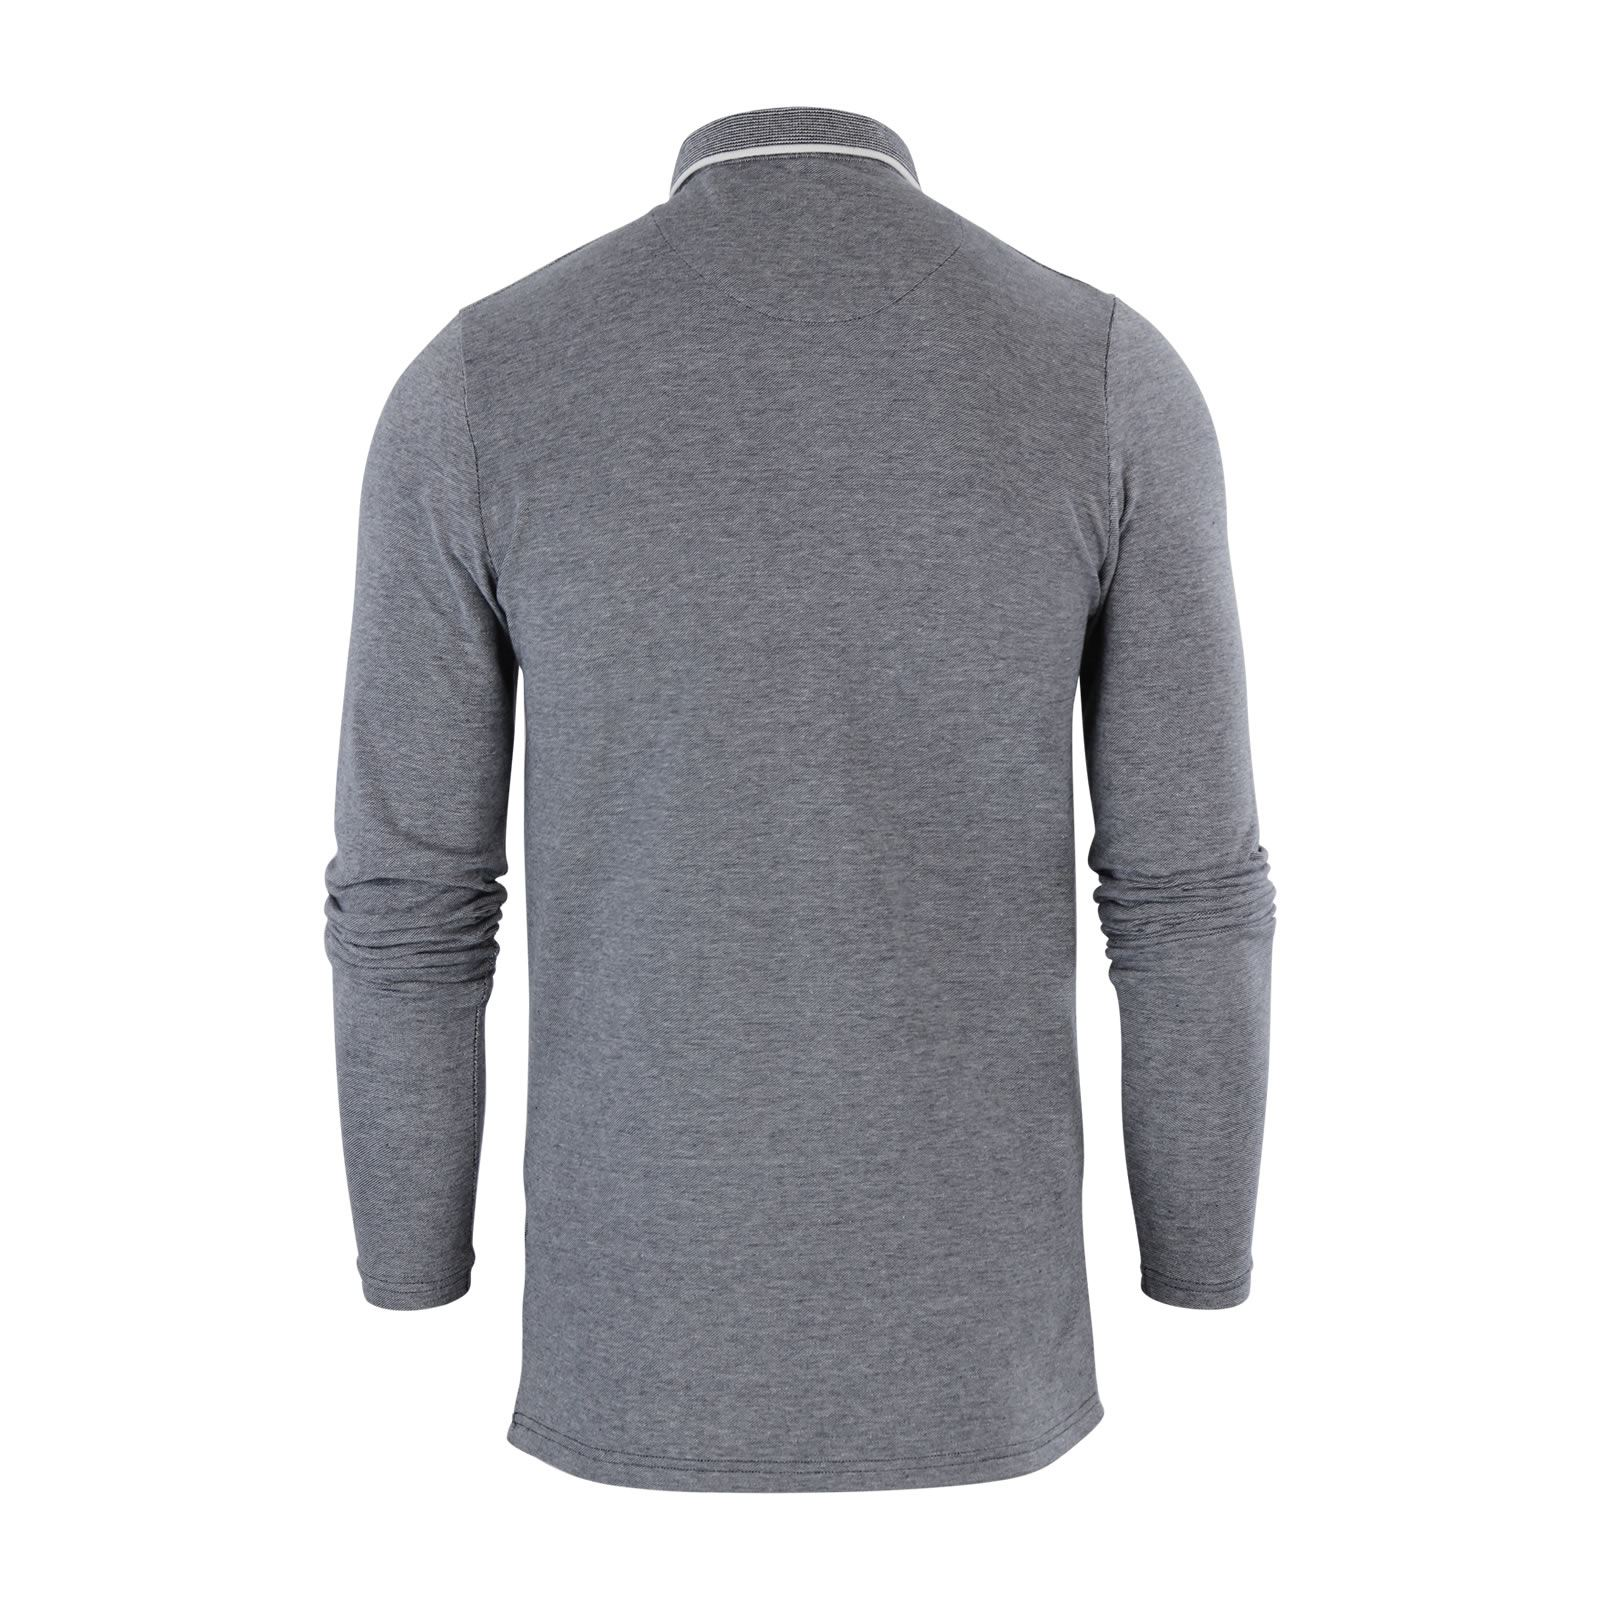 Mens-Polo-Shirt-Brave-Soul-Long-Sleeve-Collared-Top-In-Various-Styles thumbnail 3